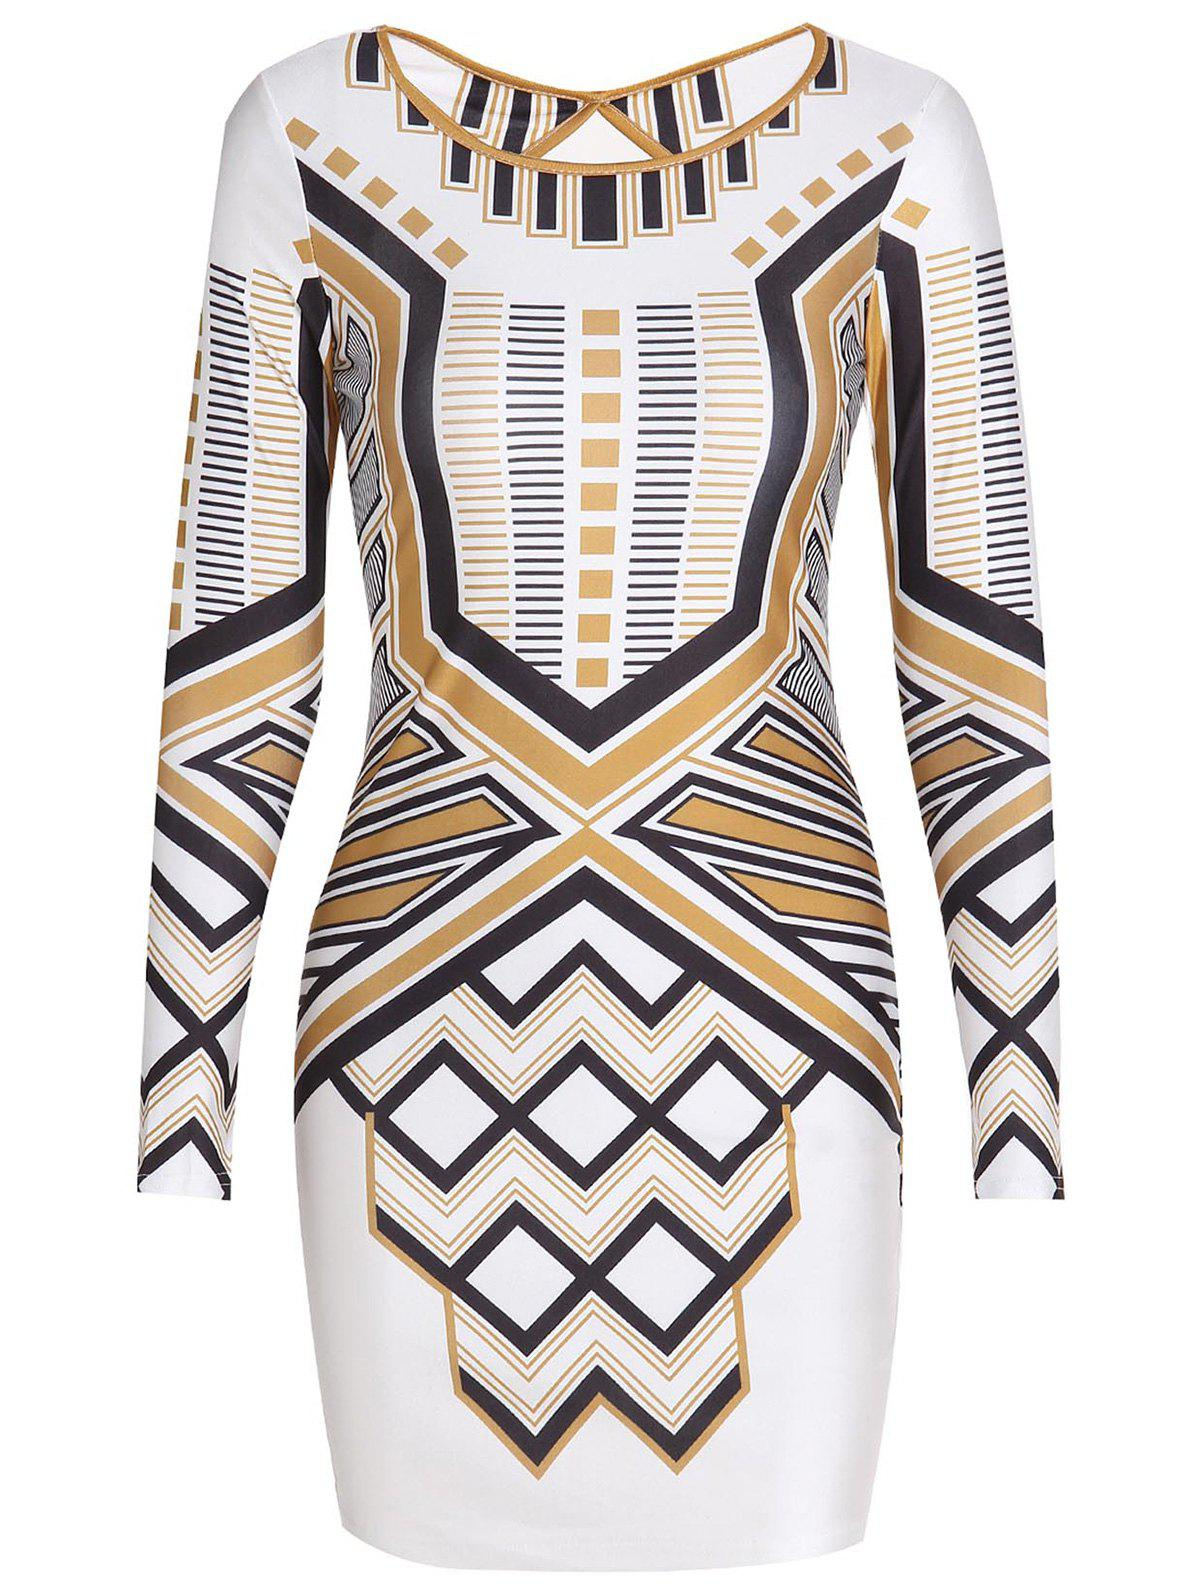 Stylish Round Collar Long Sleeve Backless Slimming Striped Women's Dress - WHITE S